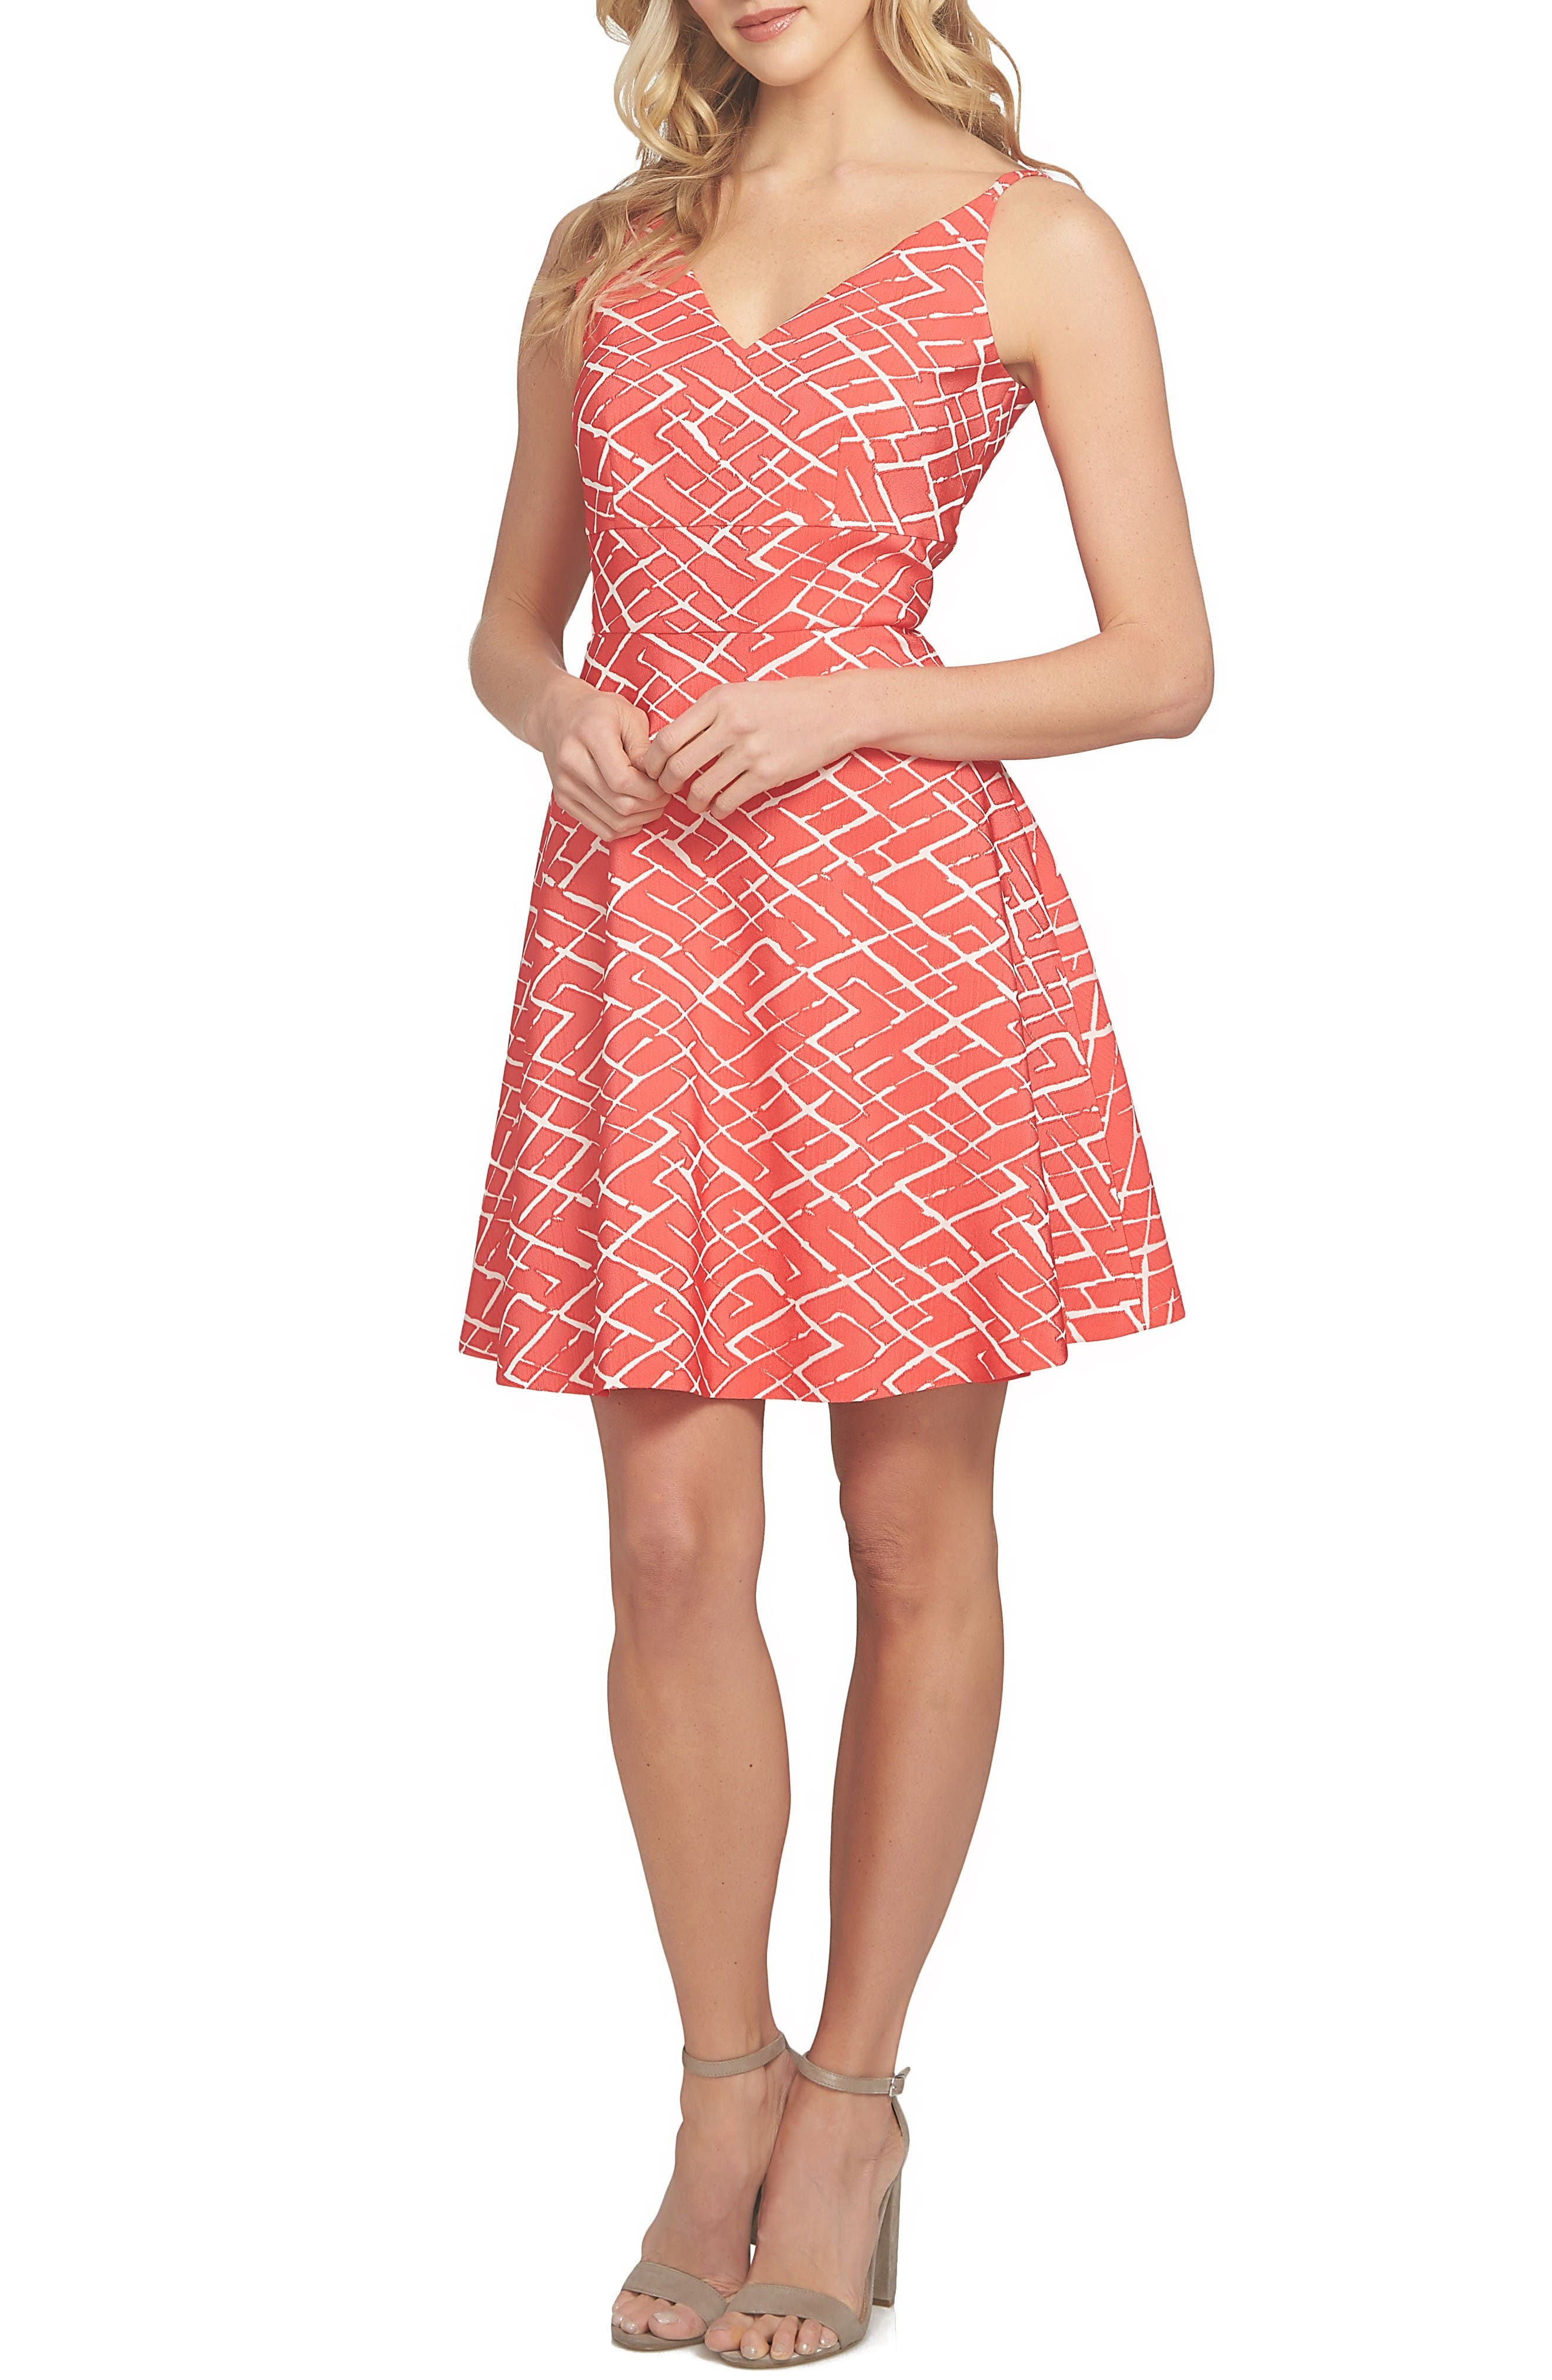 Alternate Image 1 Selected - CeCe Miley Print Fit & Flare Dress